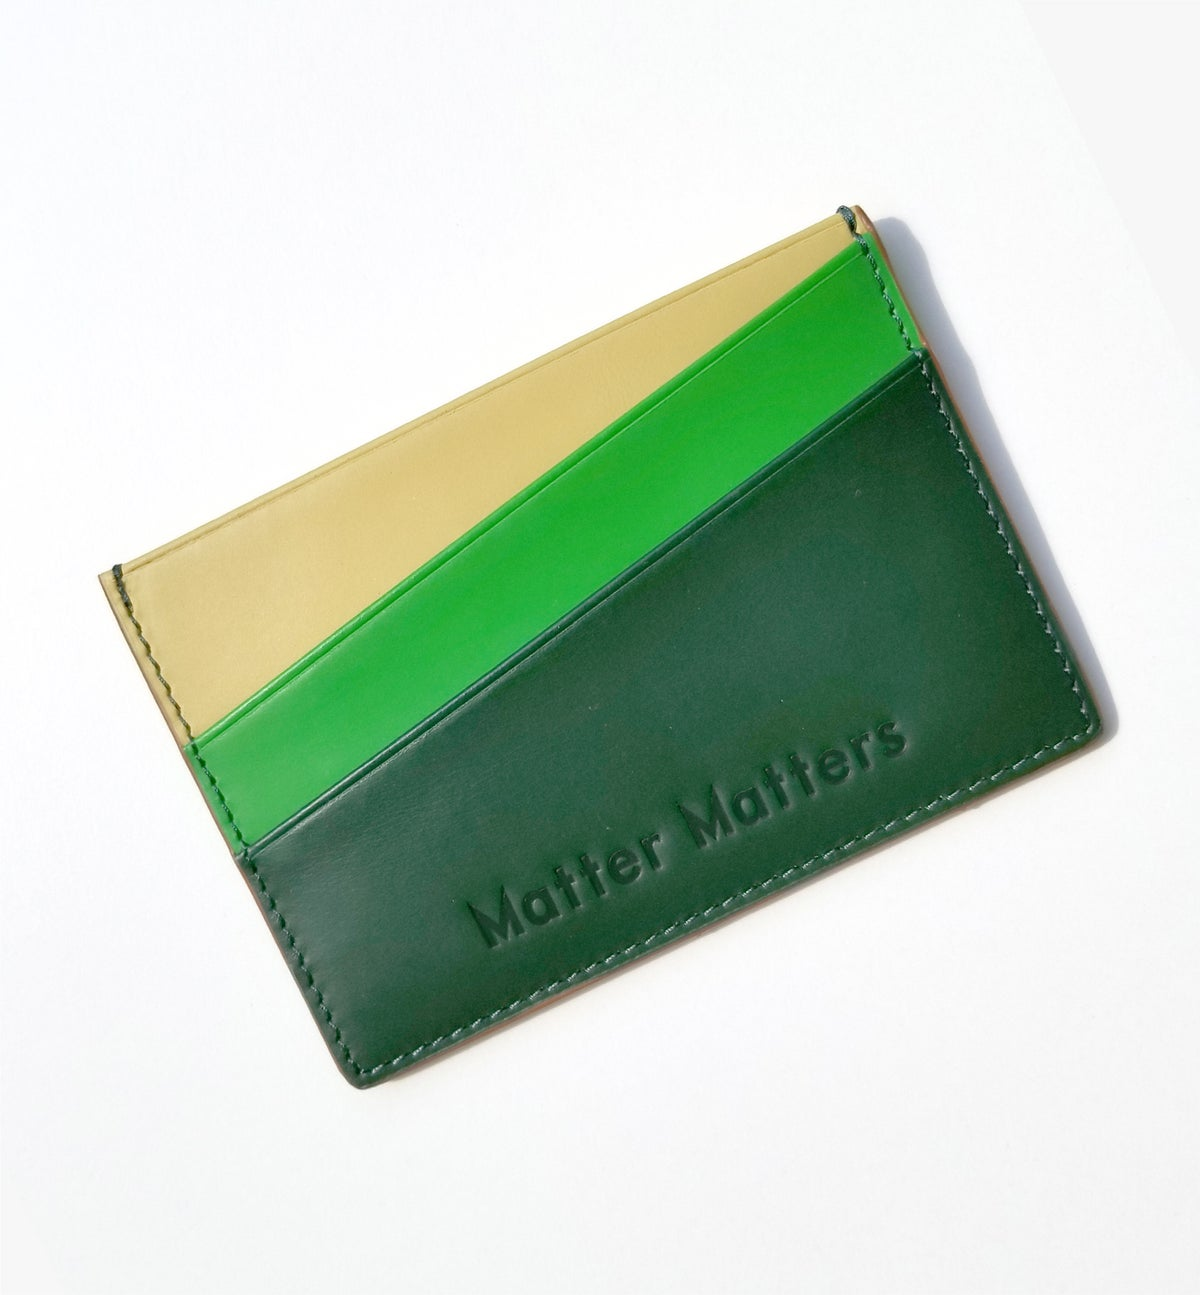 Image of 'Unlimited Funds' Multicolor card case - Rainbow Green